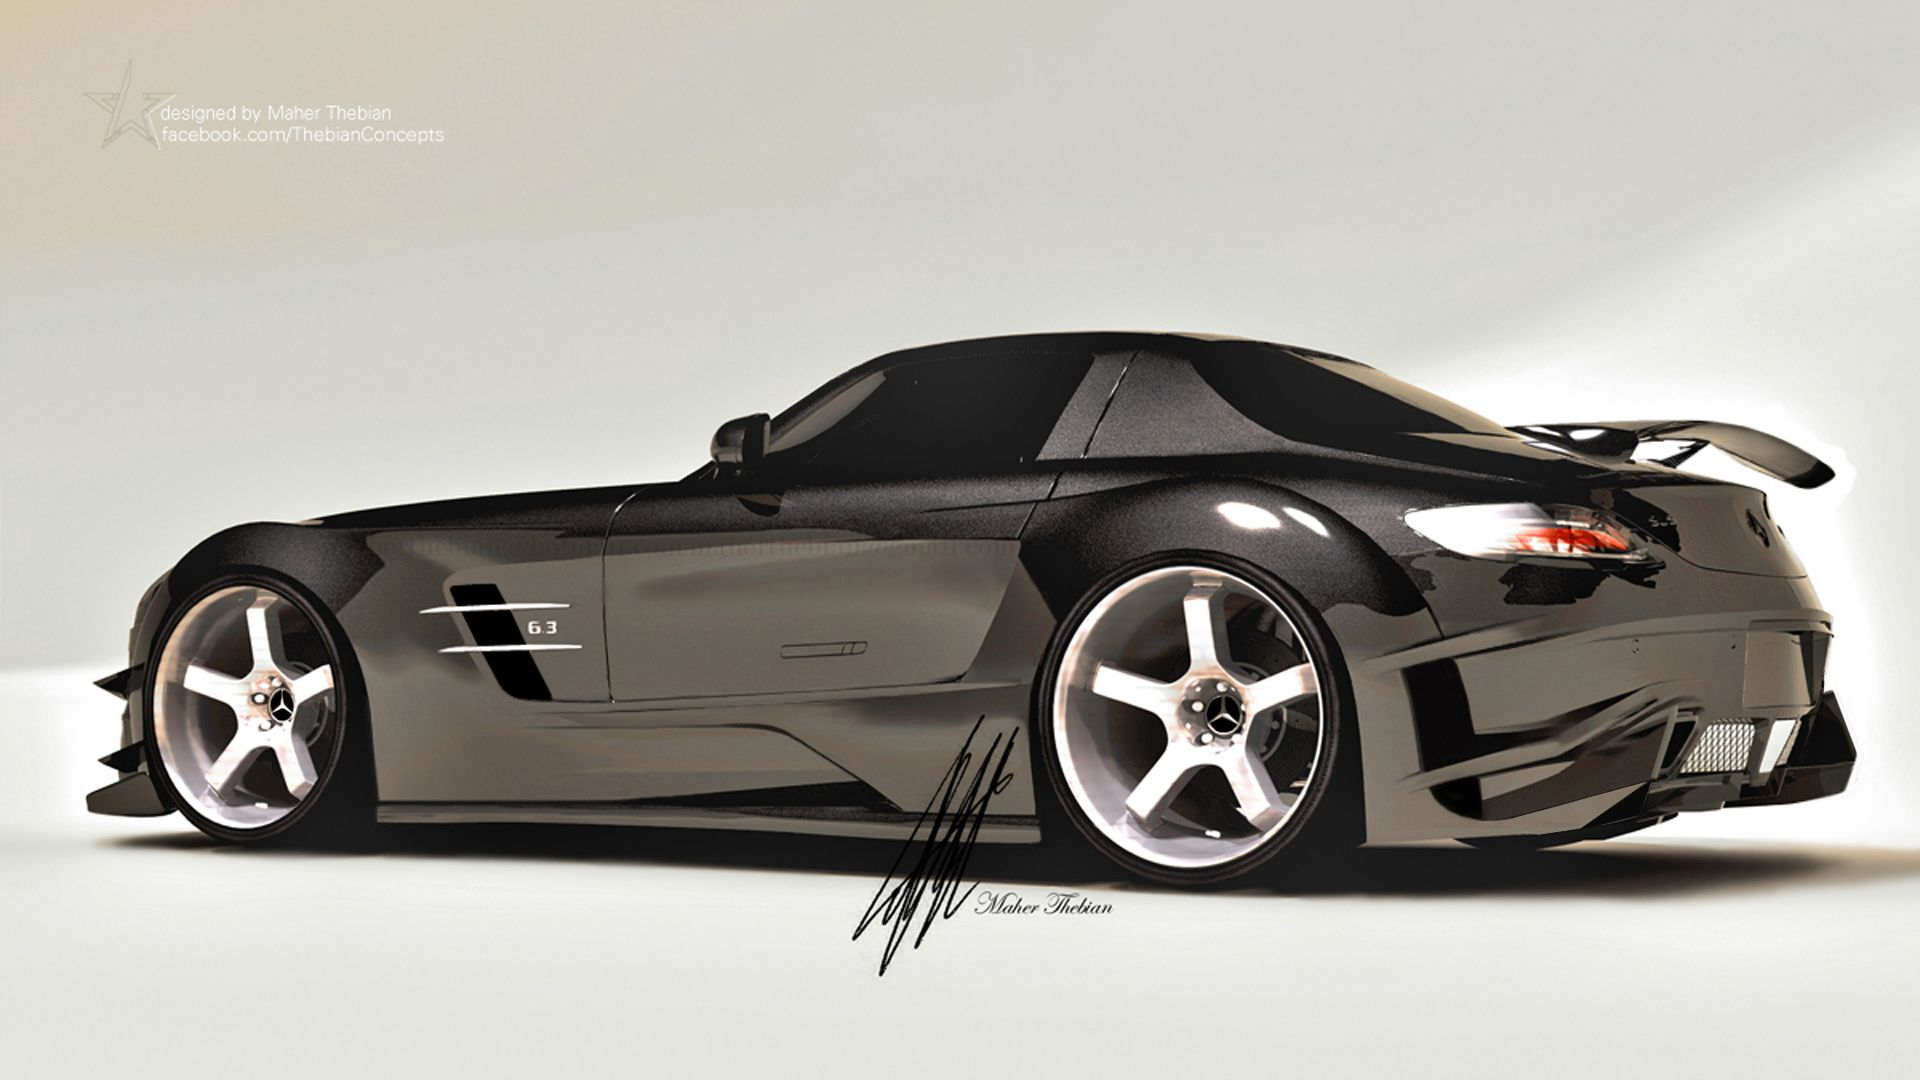 My new SLS body kit design. Hope you like and free to share.